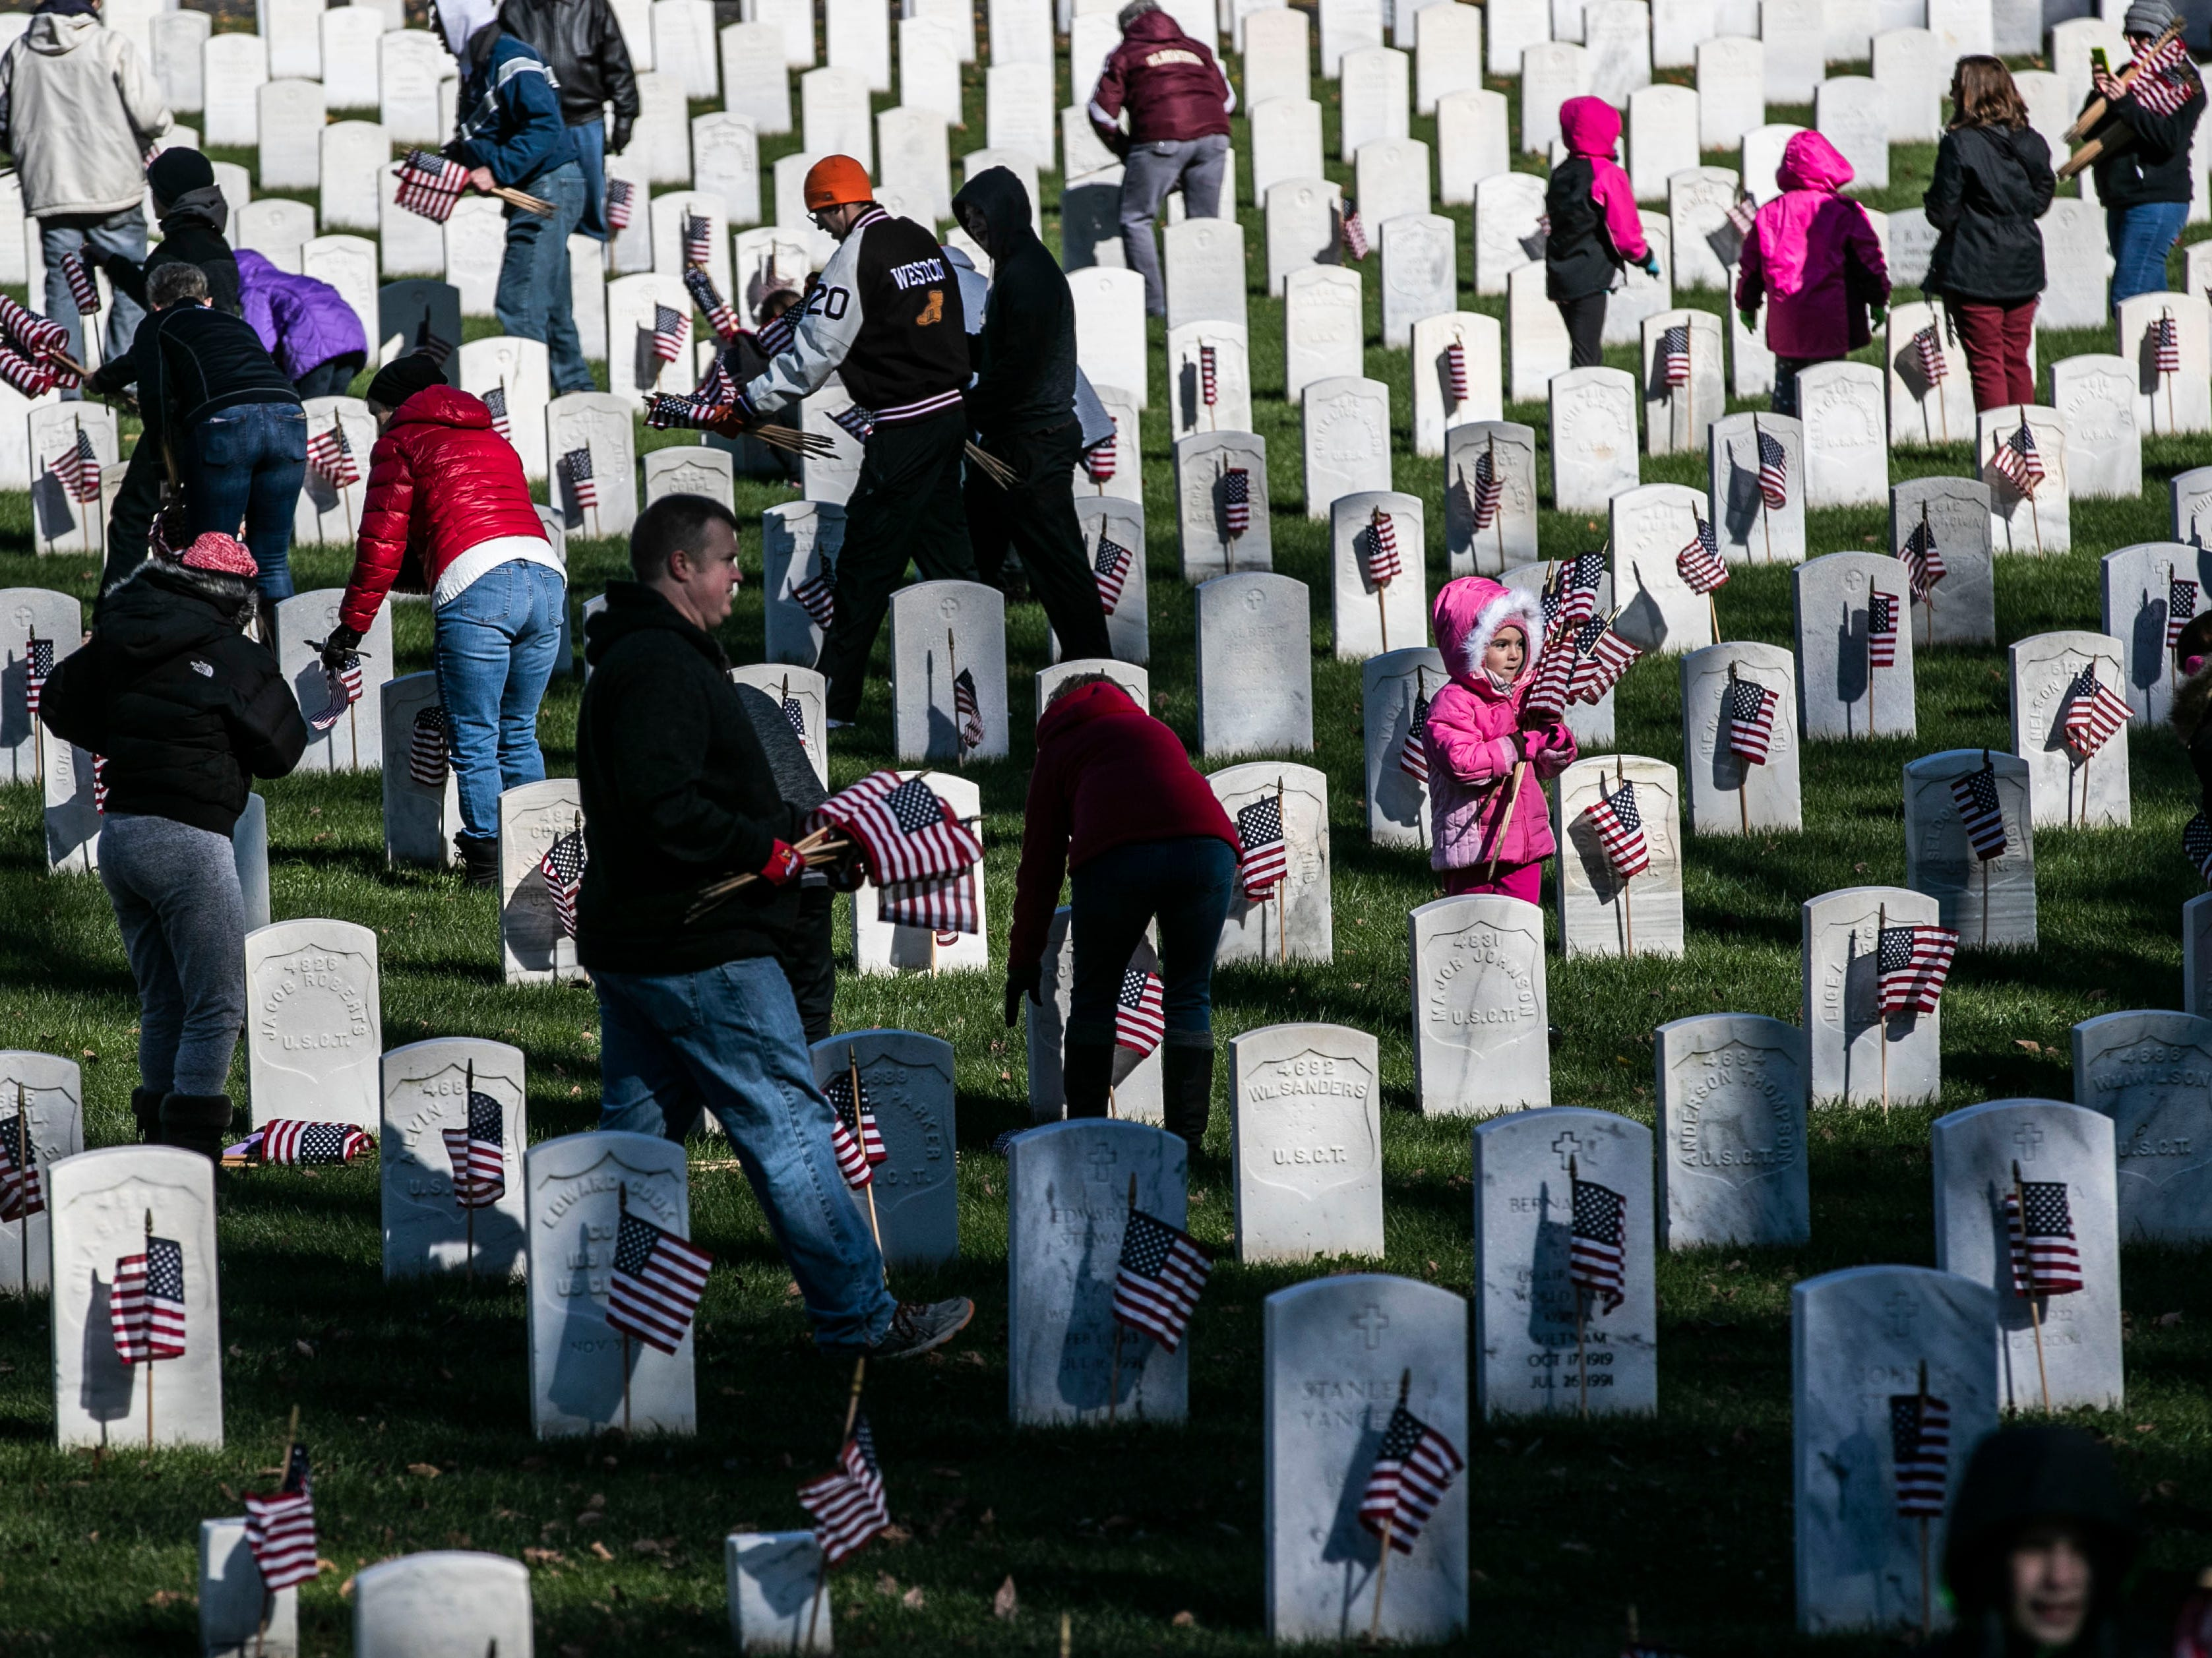 Adults and children placed small American flags as a remembrance to military veterans buried at Cave Hill Cemetery during a Flags 4 Vets event Saturday, Nov. 10, 2018. Veterans Day is Sunday, Nov. 11. Around 250 volunteers placed nearly 7,500 flags on military veteran gravesites.